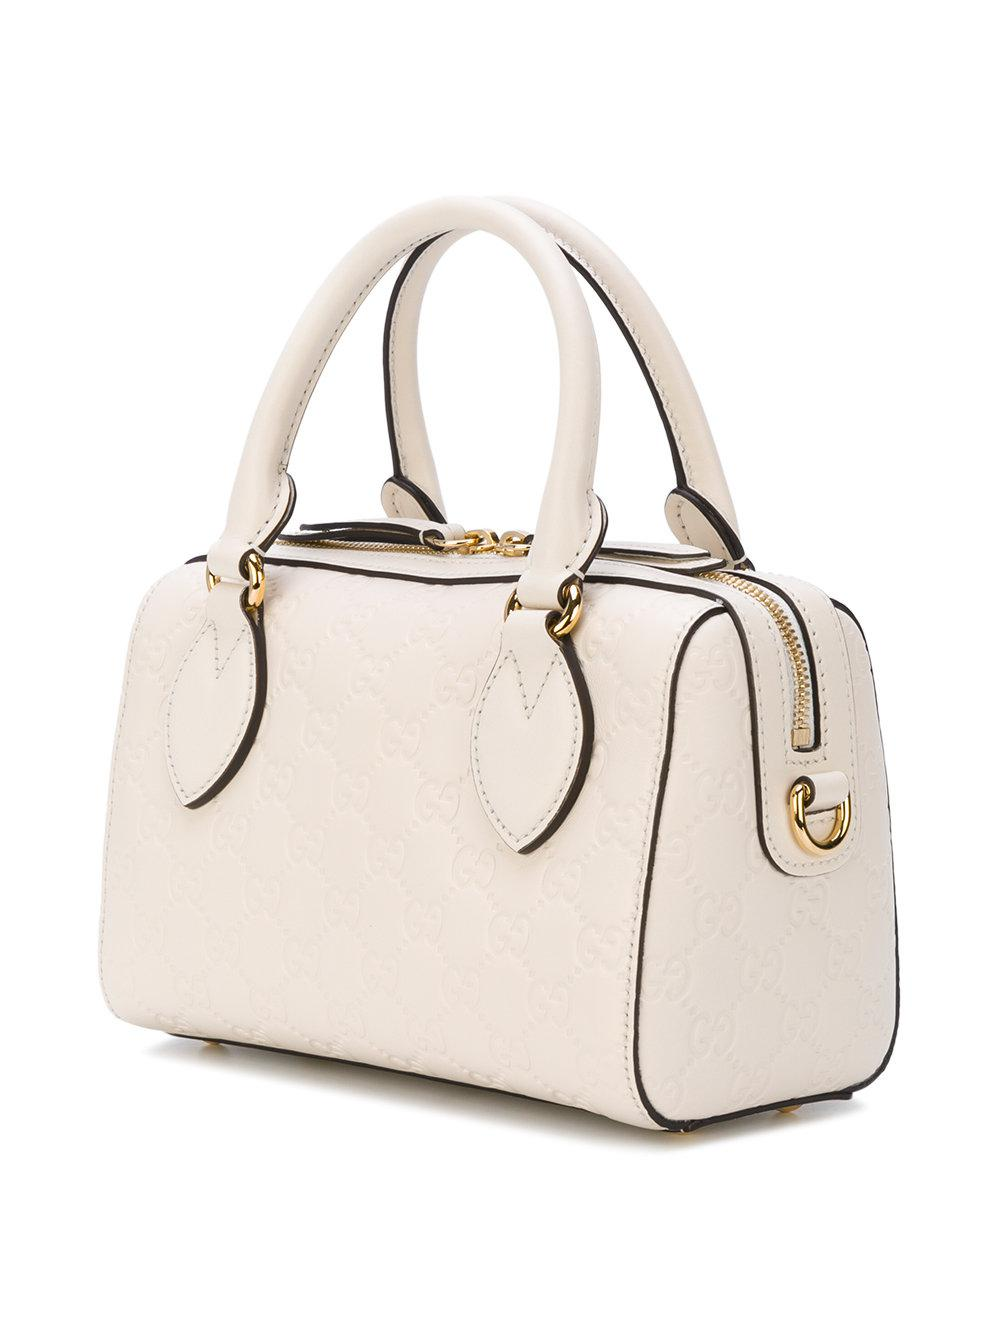 ea0d09c0c7f Lyst - Gucci Small Soft Signature Top Handle Bag in White